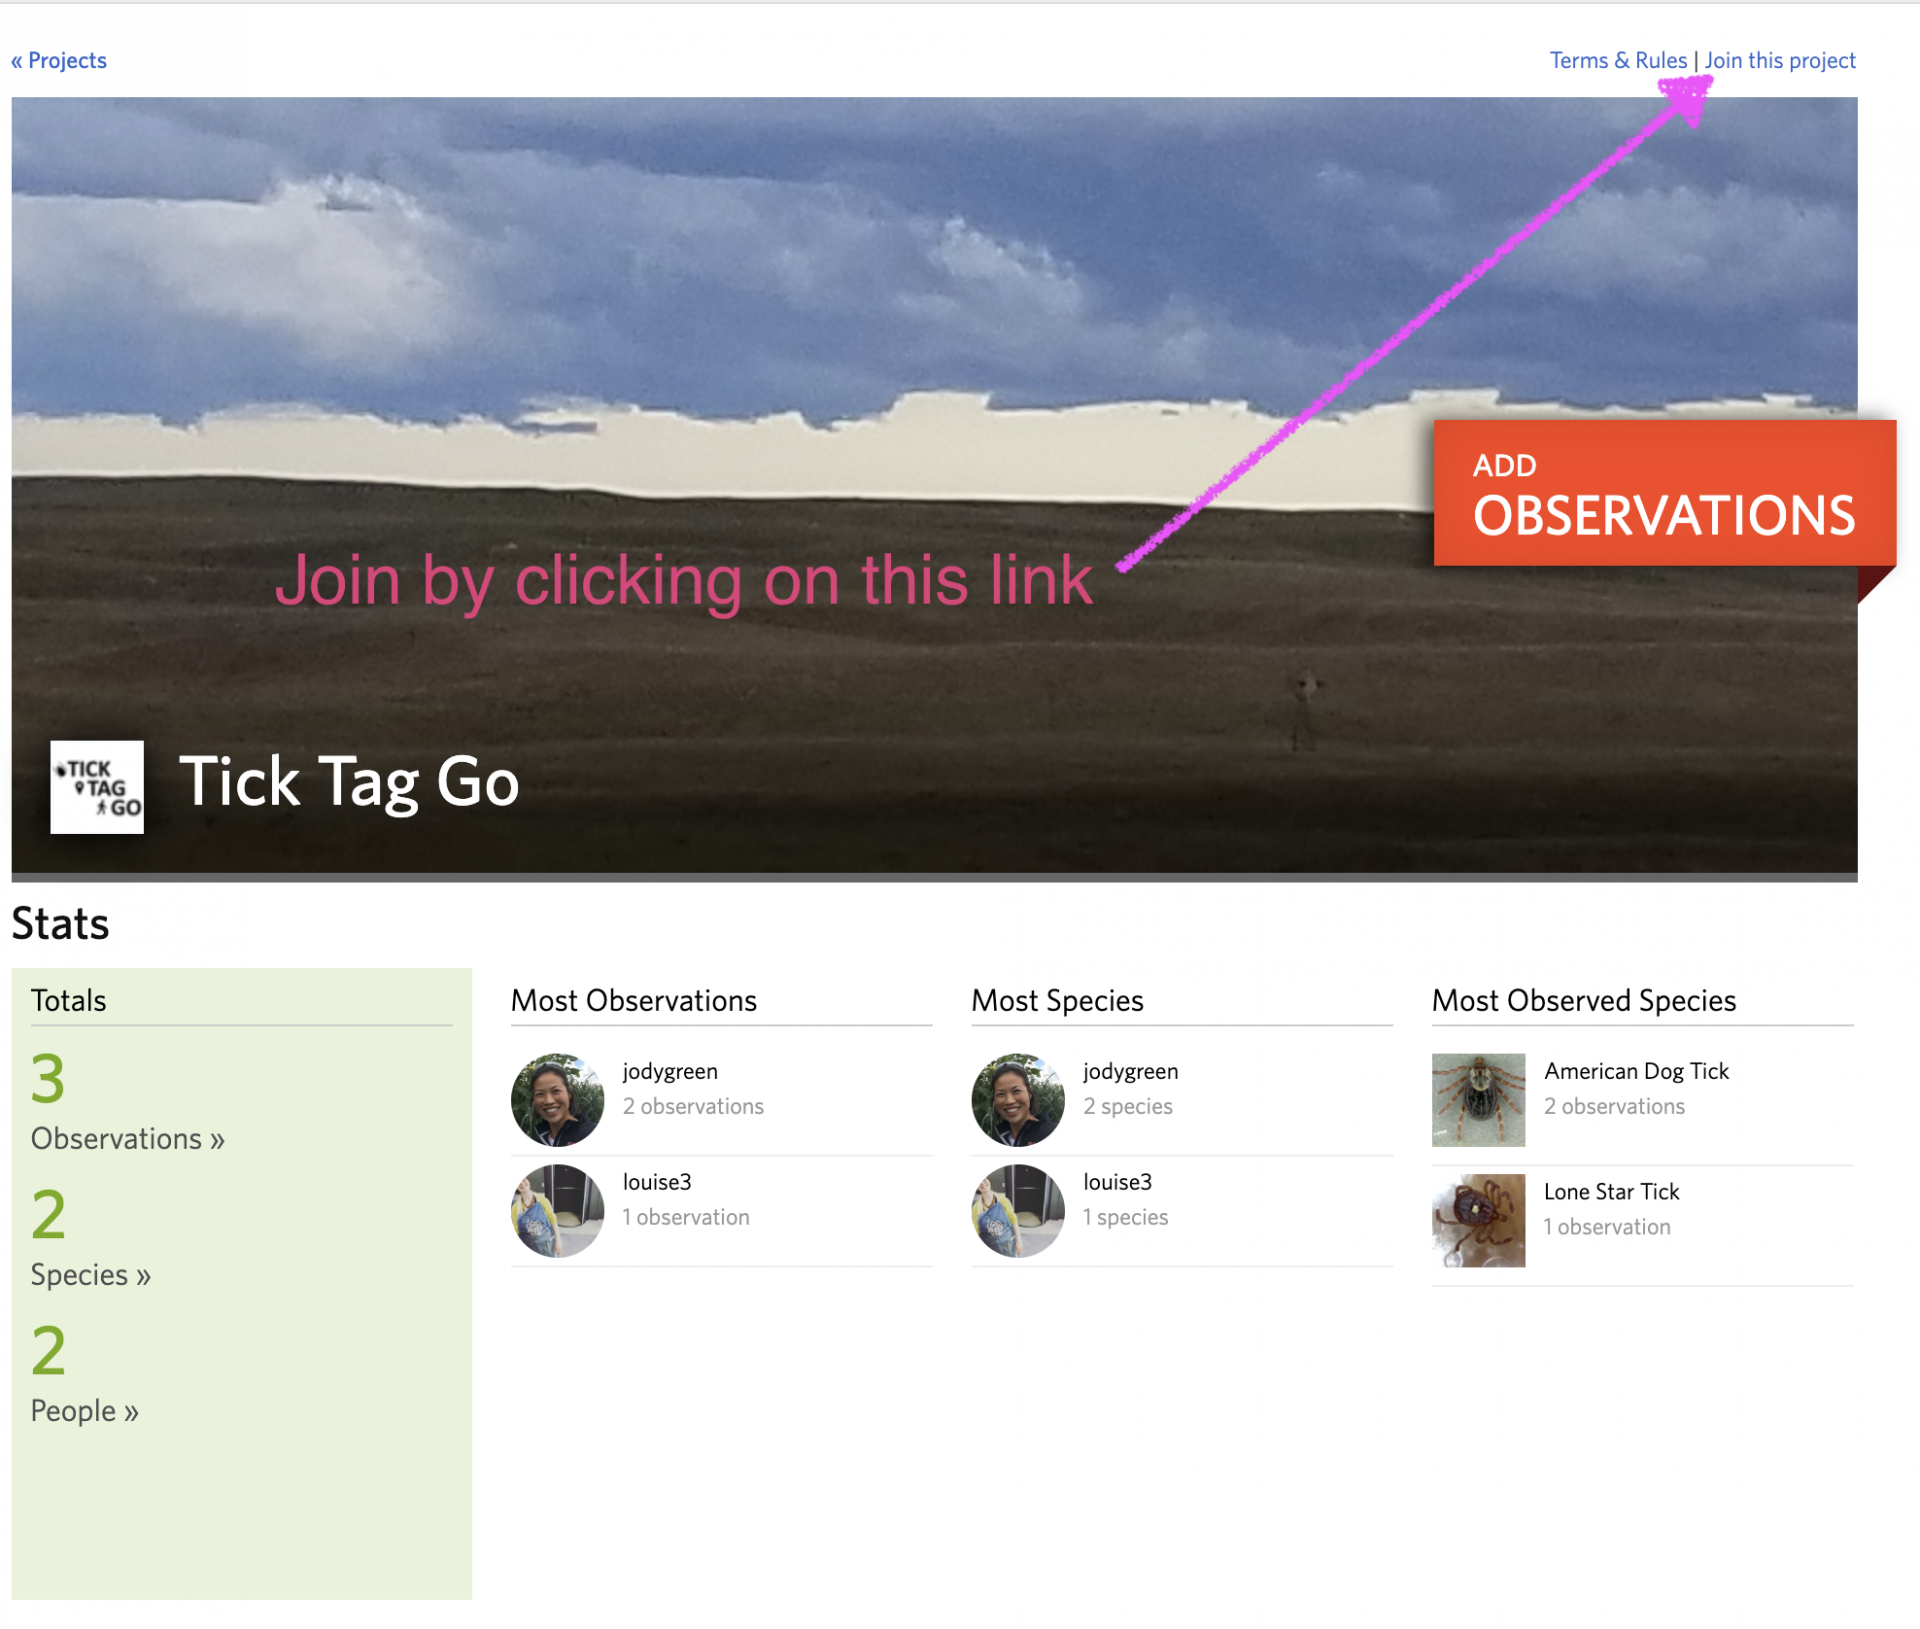 Tick tag go page on inaturalist